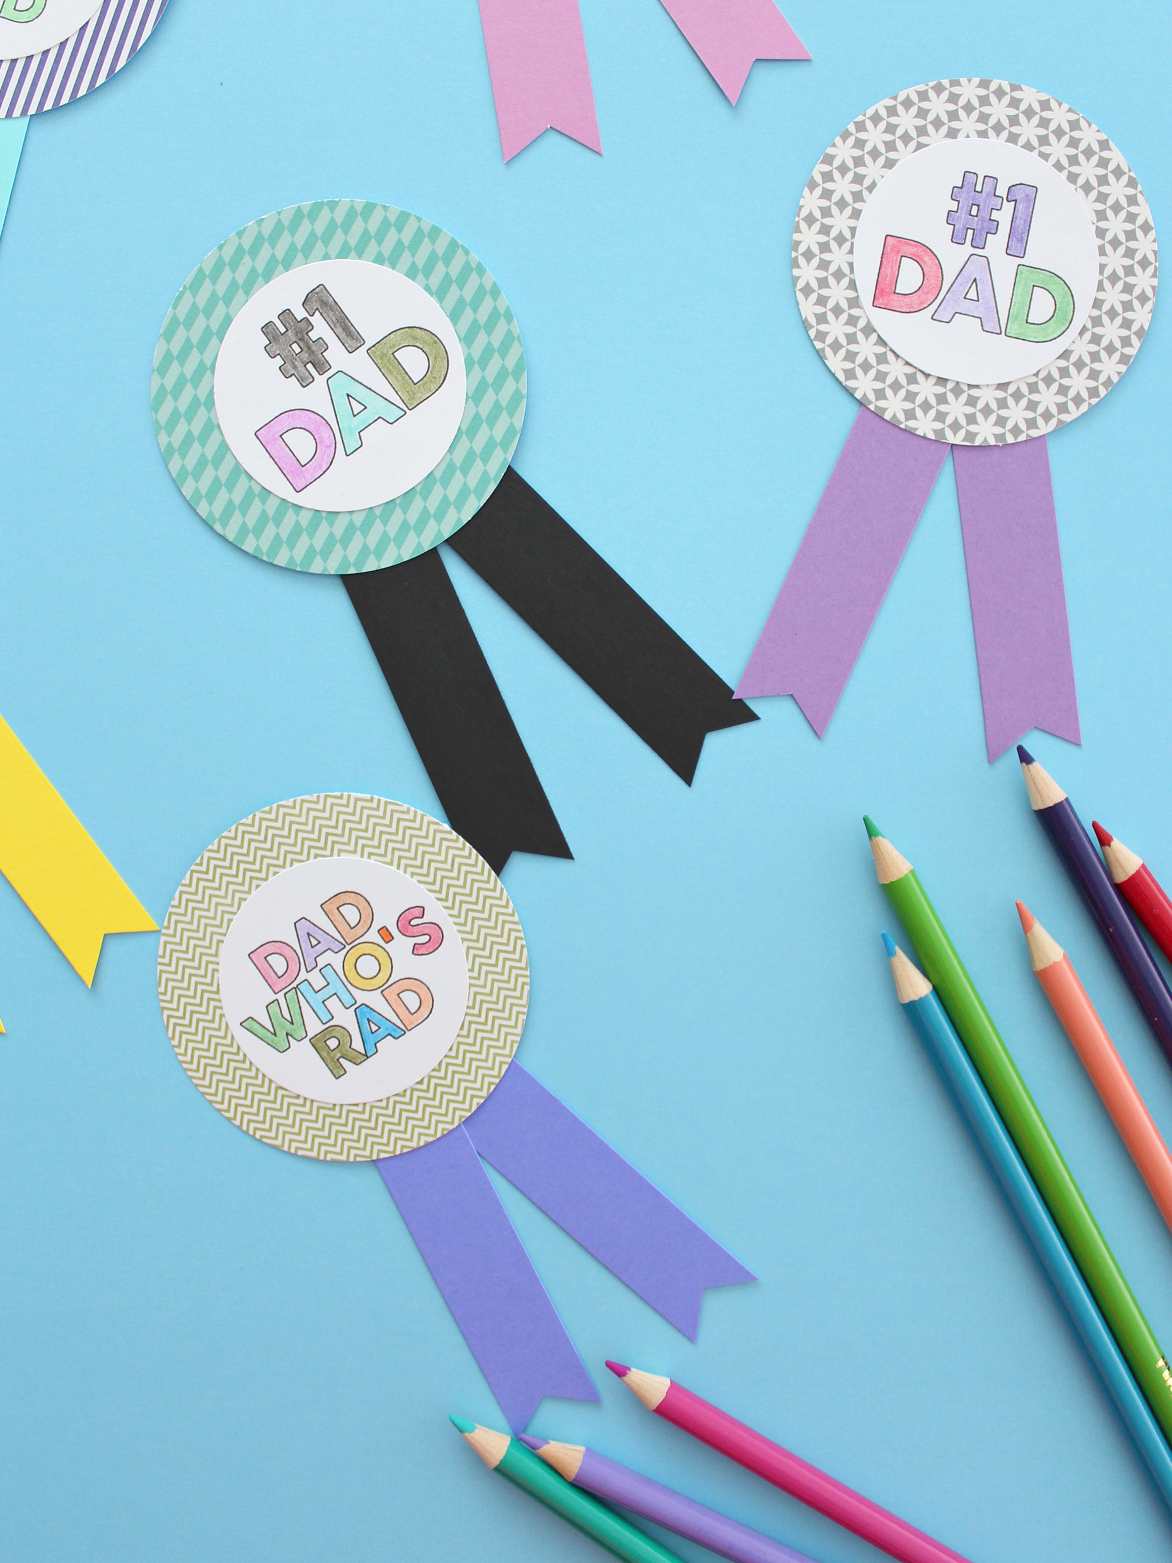 FATHER'S DAY PRINTABLES & CRAFTS